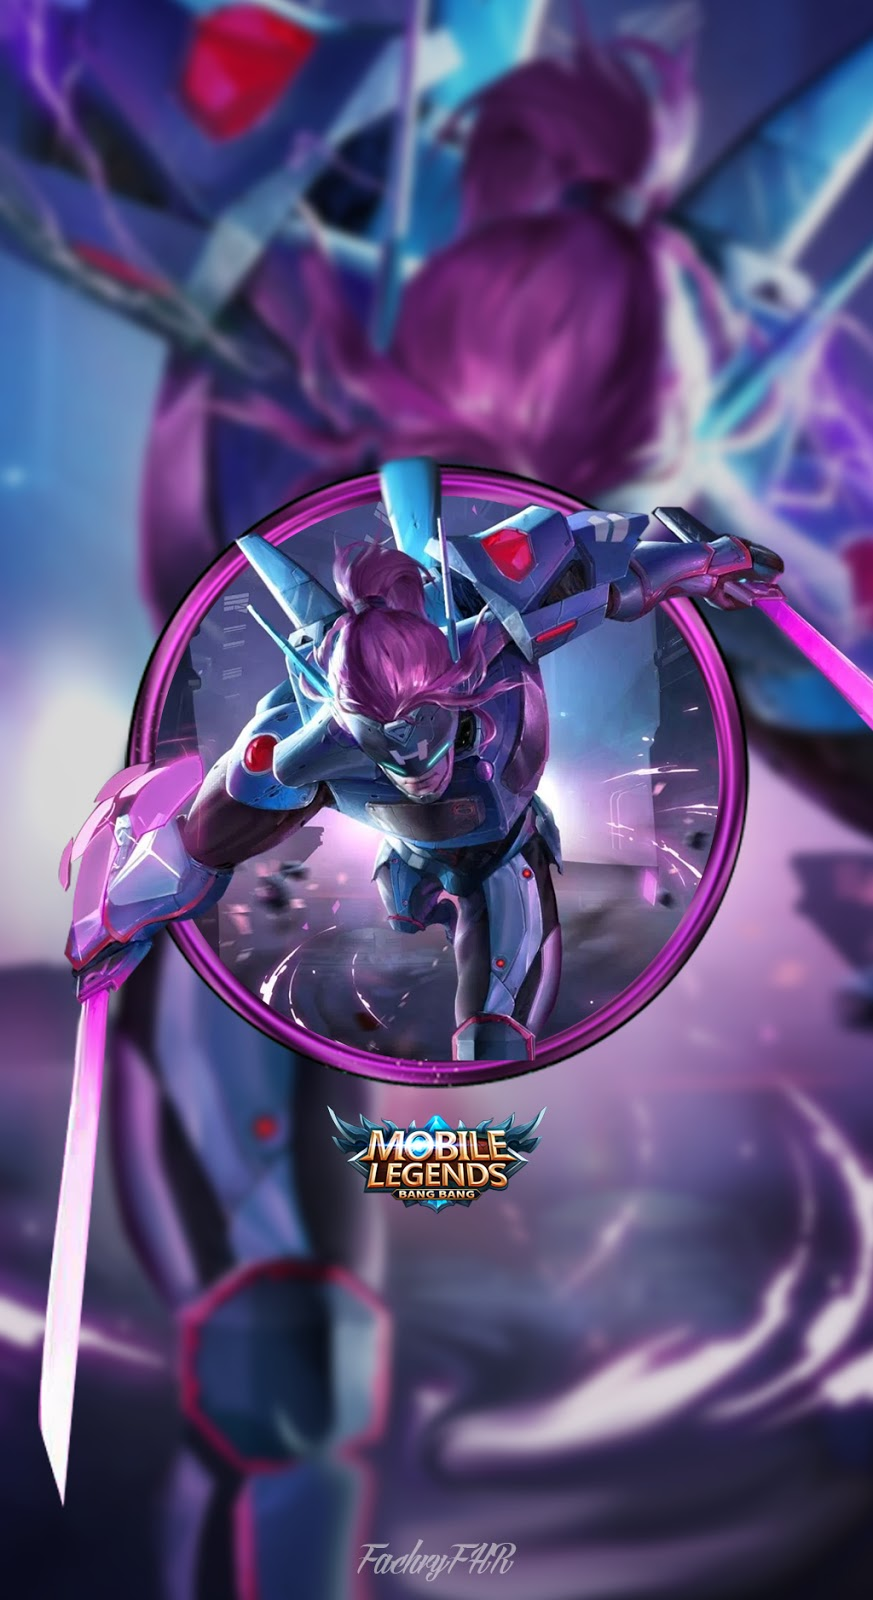 Kumpulan Wallpaper Android Mobile Legends Part 4 Katsu Blog